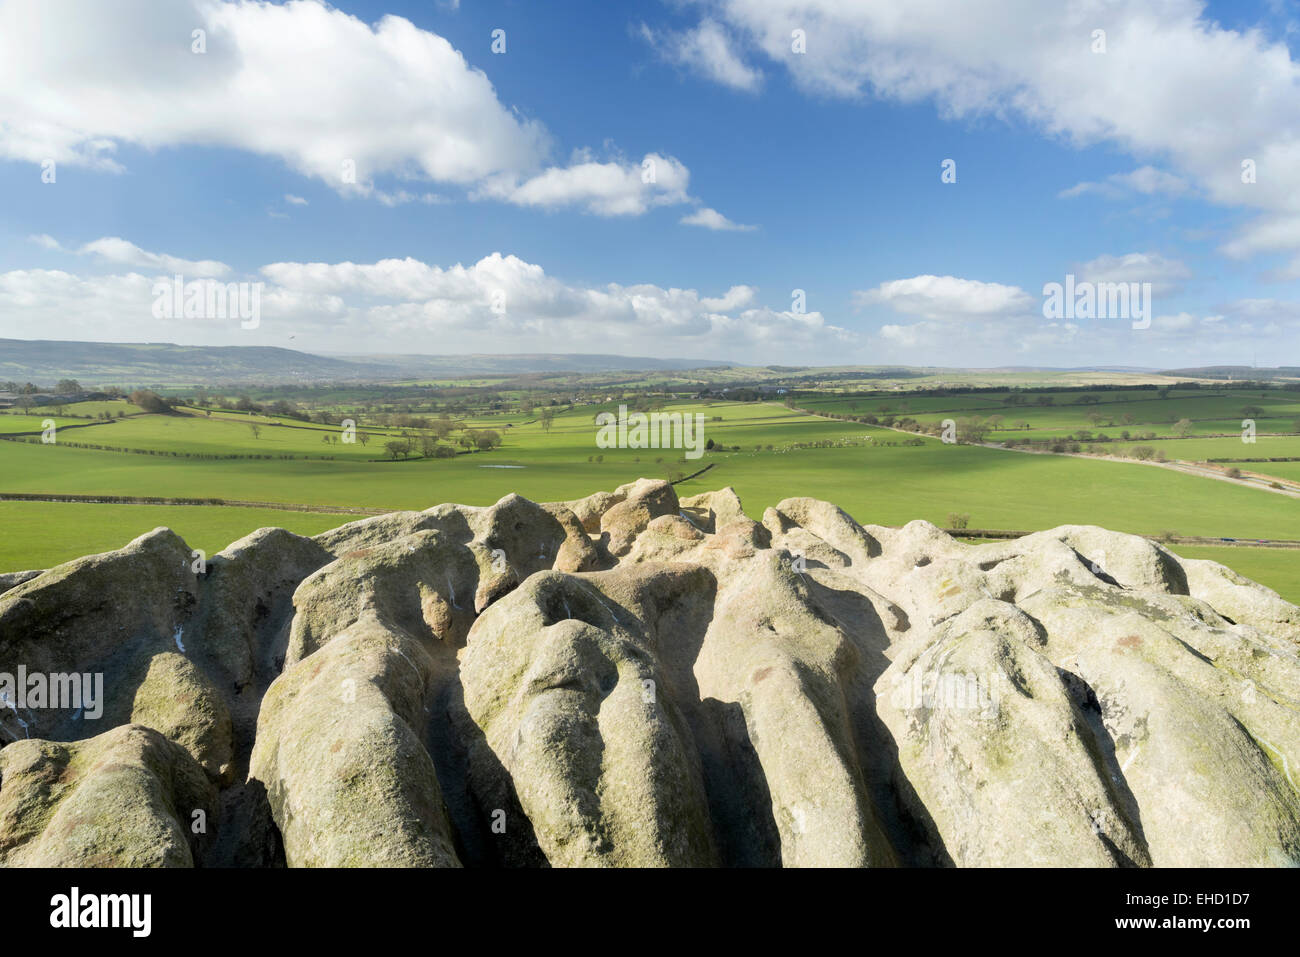 Almscliffe Crag millstone Grit outcrop at North Rigton, near Harrogate. - Stock Image